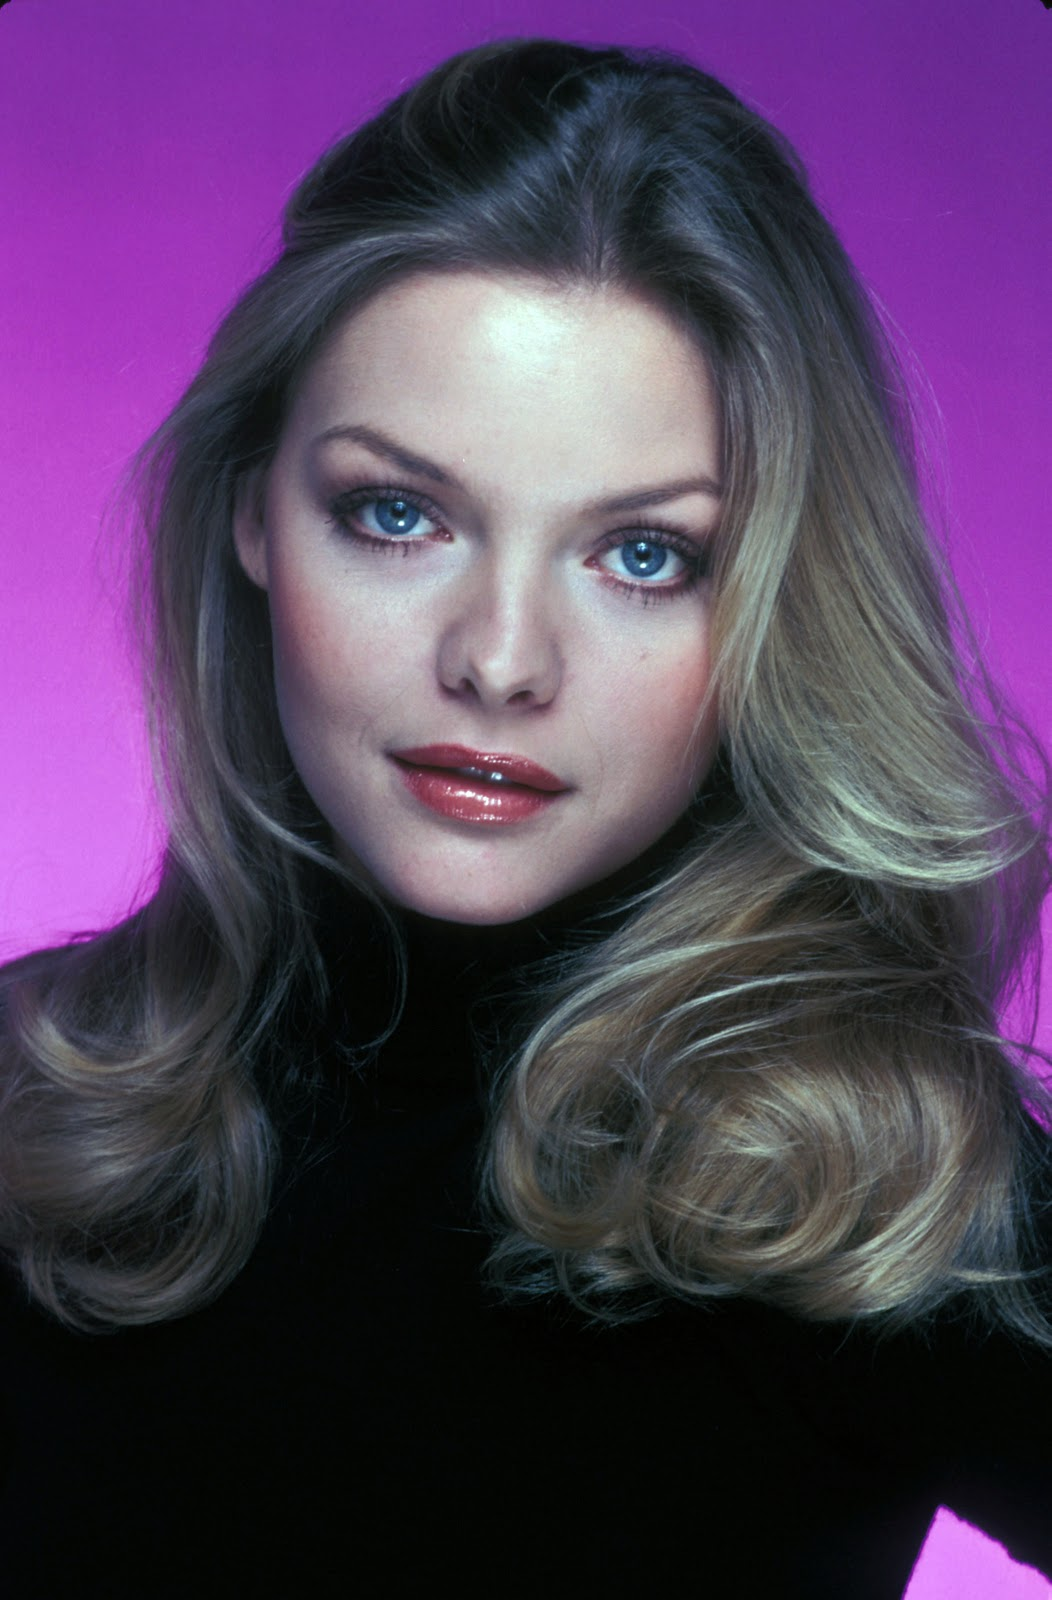 Young Celebrity Photo Gallery: Michelle Pfeiffer as Young Woman